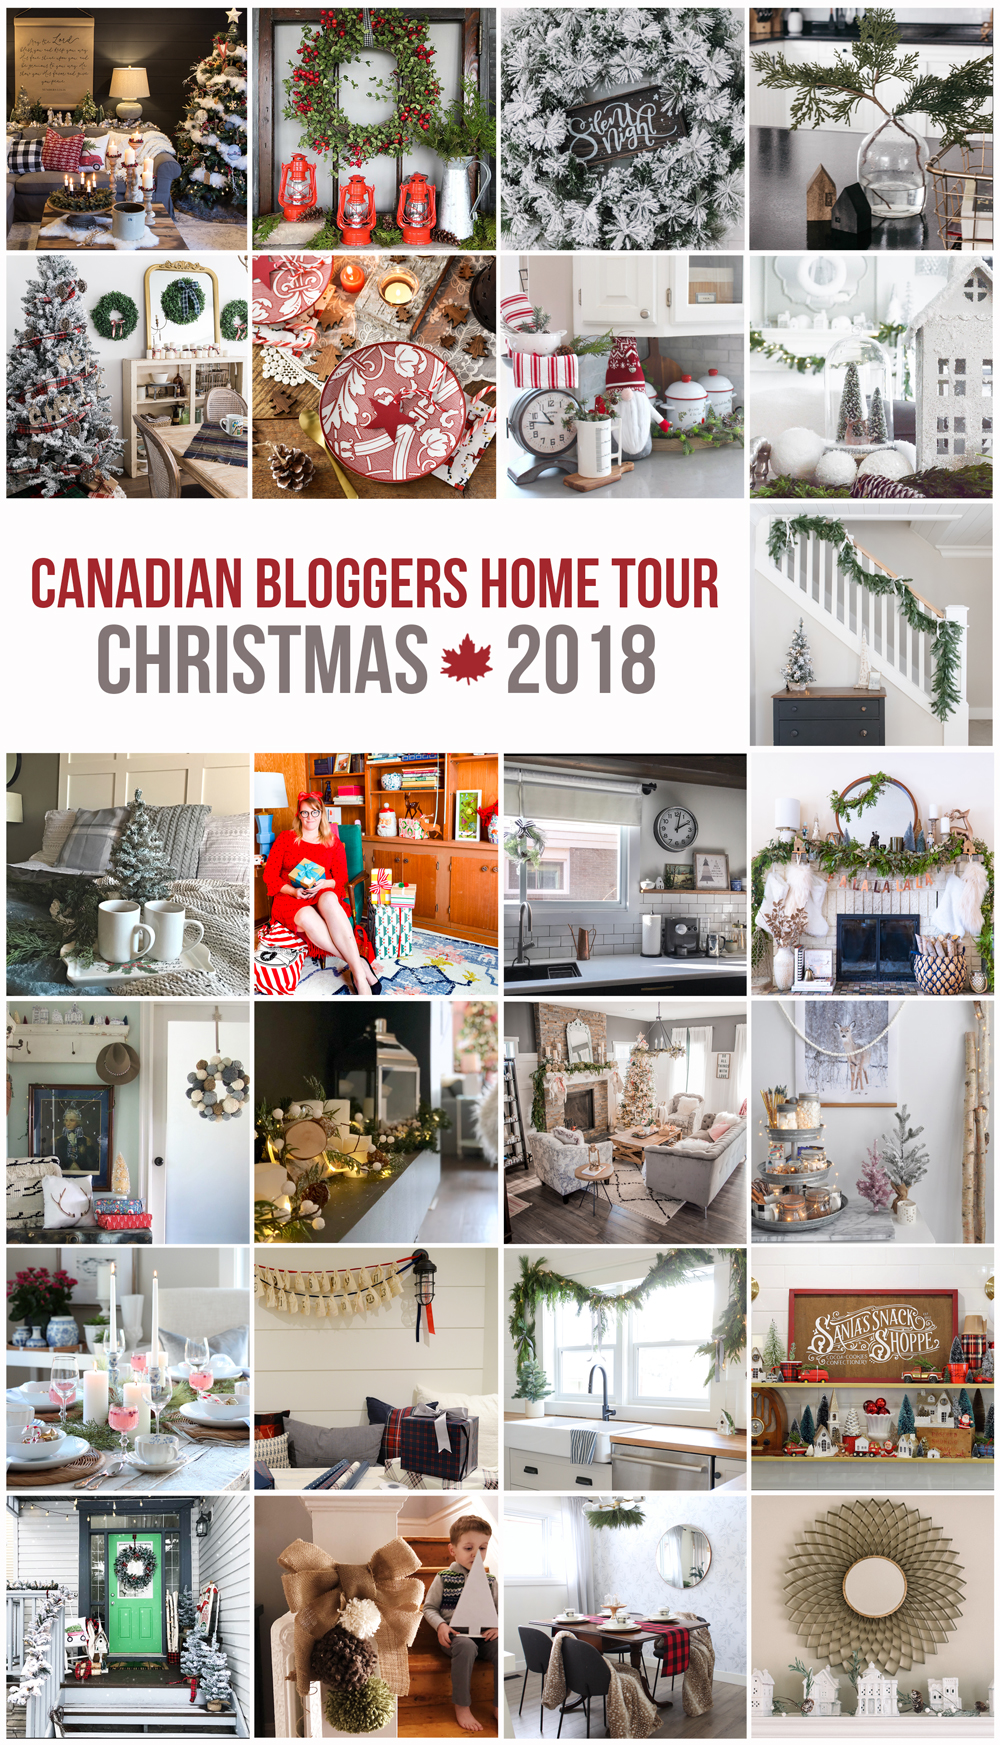 Collection of beautiful Christmas home tours from across Canada.